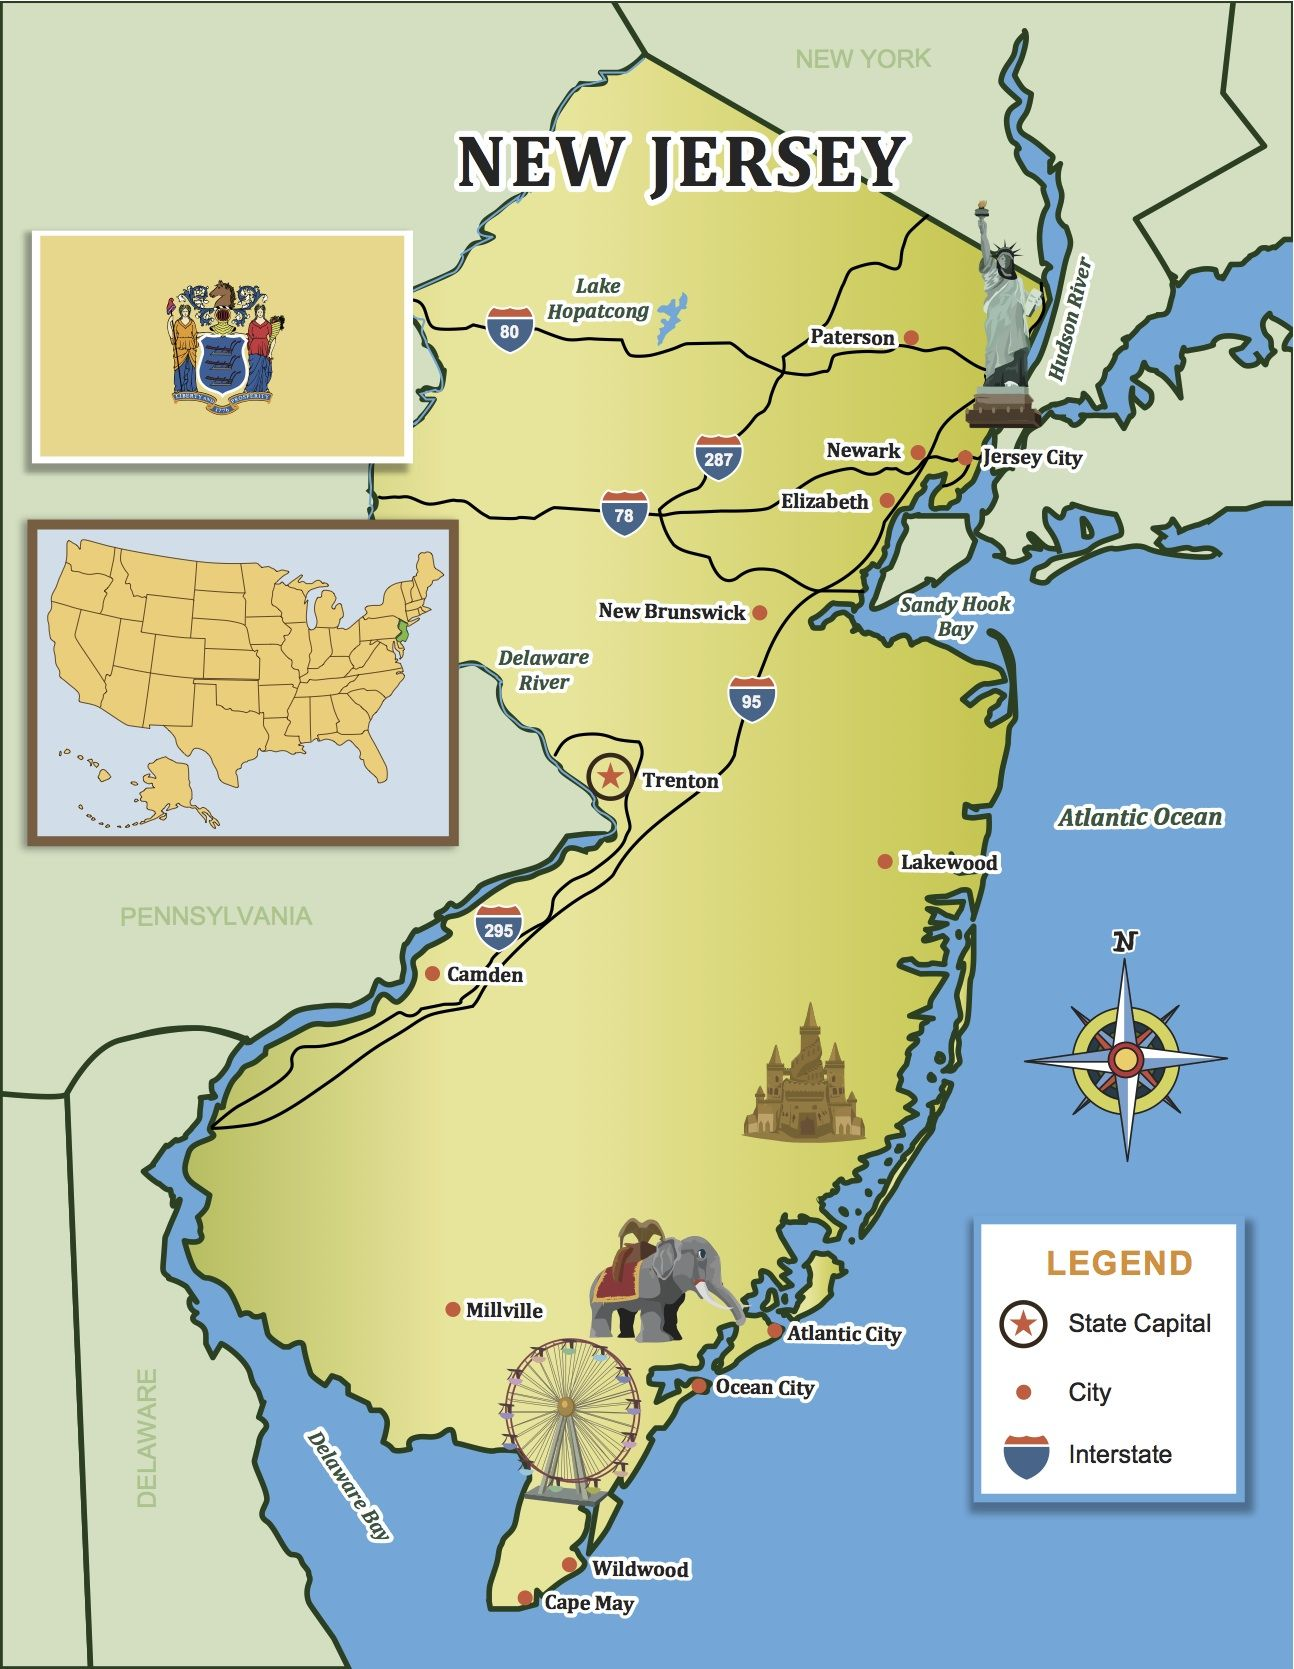 Travel Down The Jersey Coast With Our State Map Little Passports Littlepassports Newjersey Newjerseymap Lake Hopatcong New Jersey Jersey City